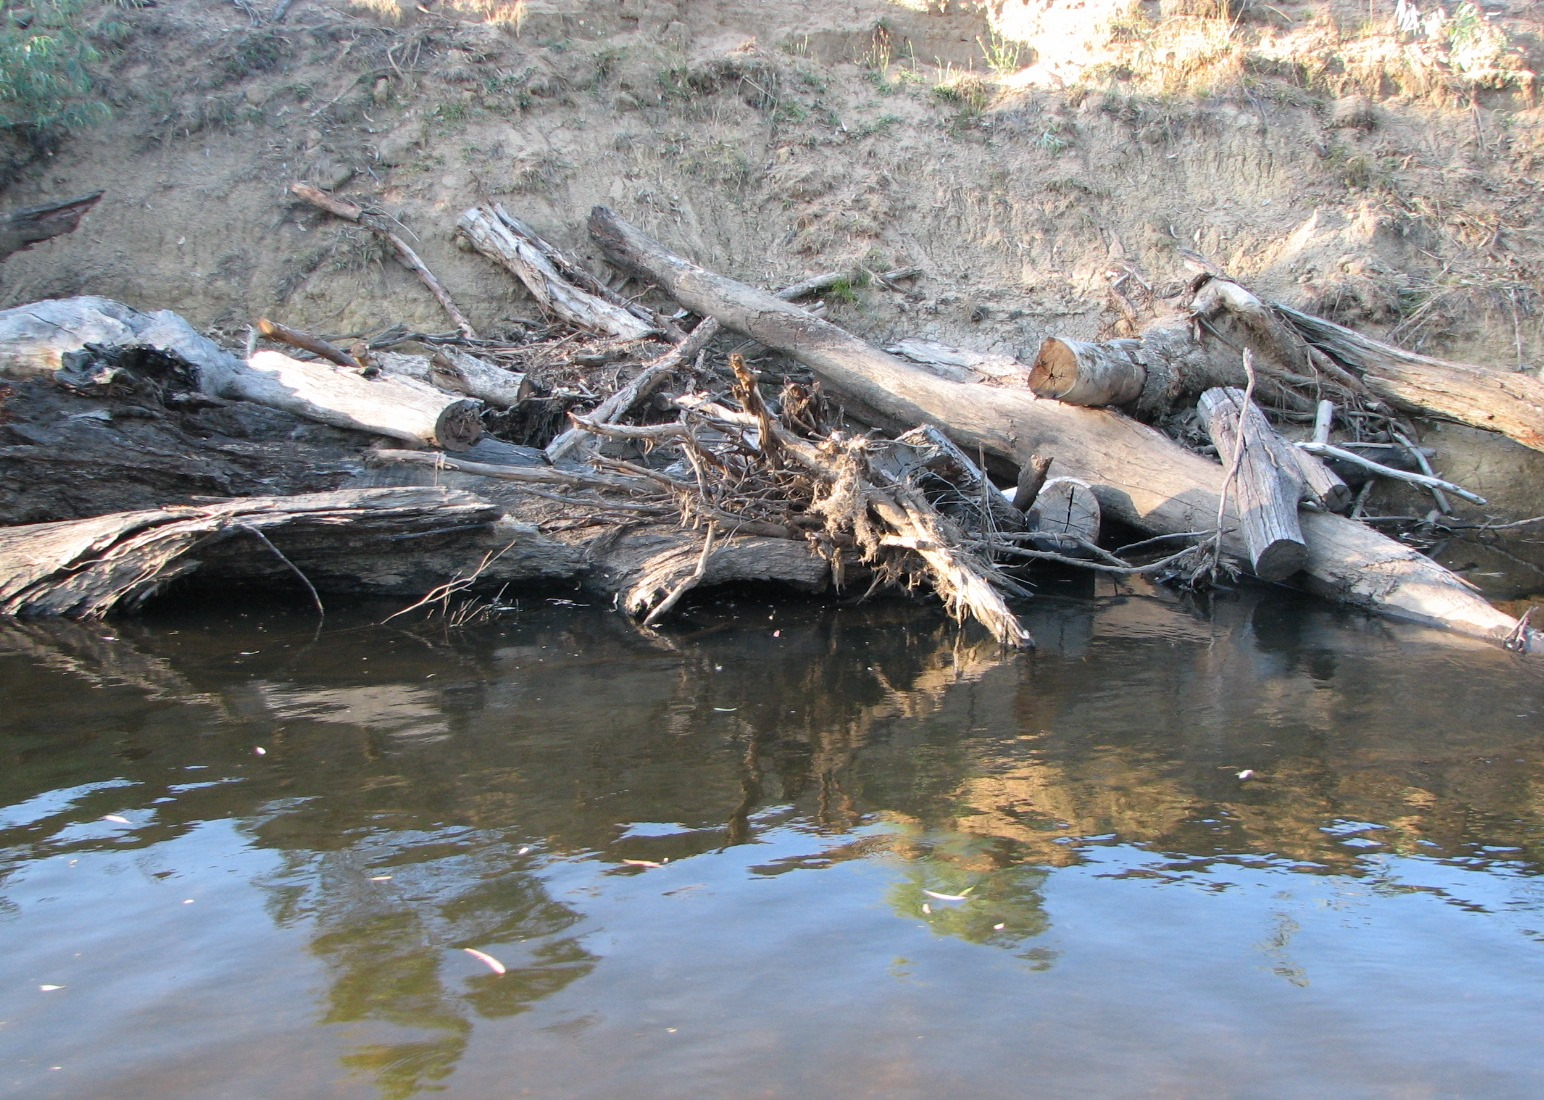 These logs were place here to improve bank stability and fish habitat